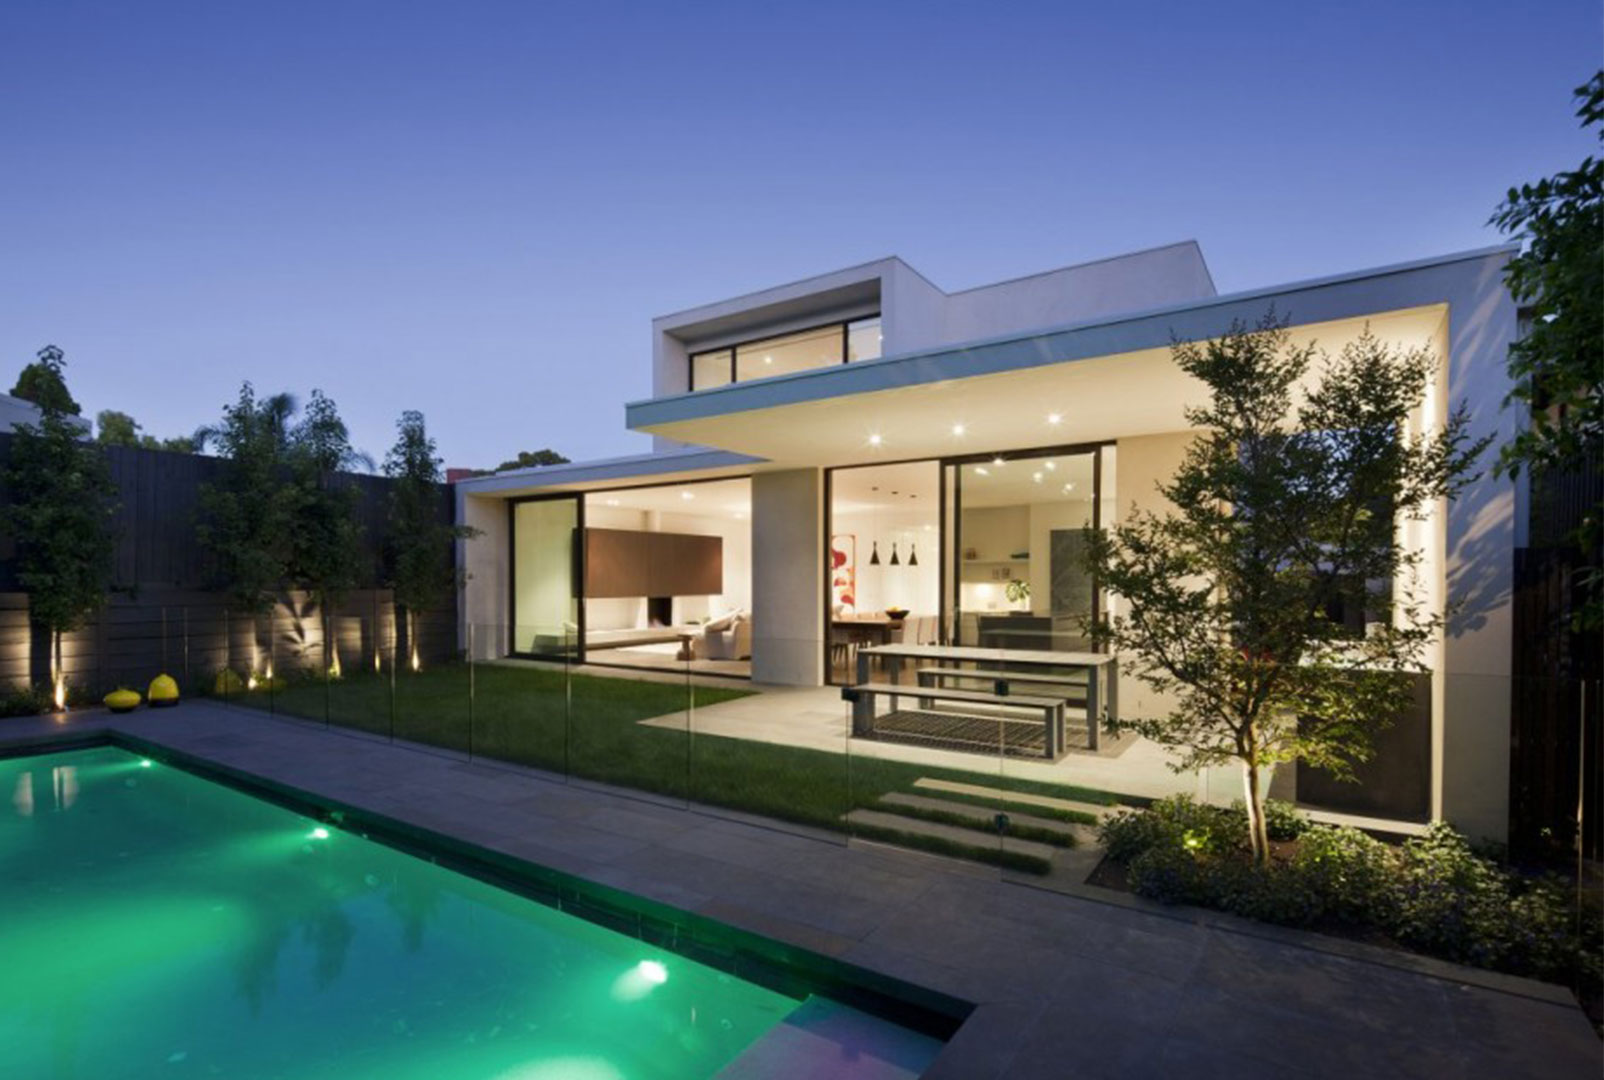 Luxury houses design ideas 2013 foxley and co for Modern house designs australia